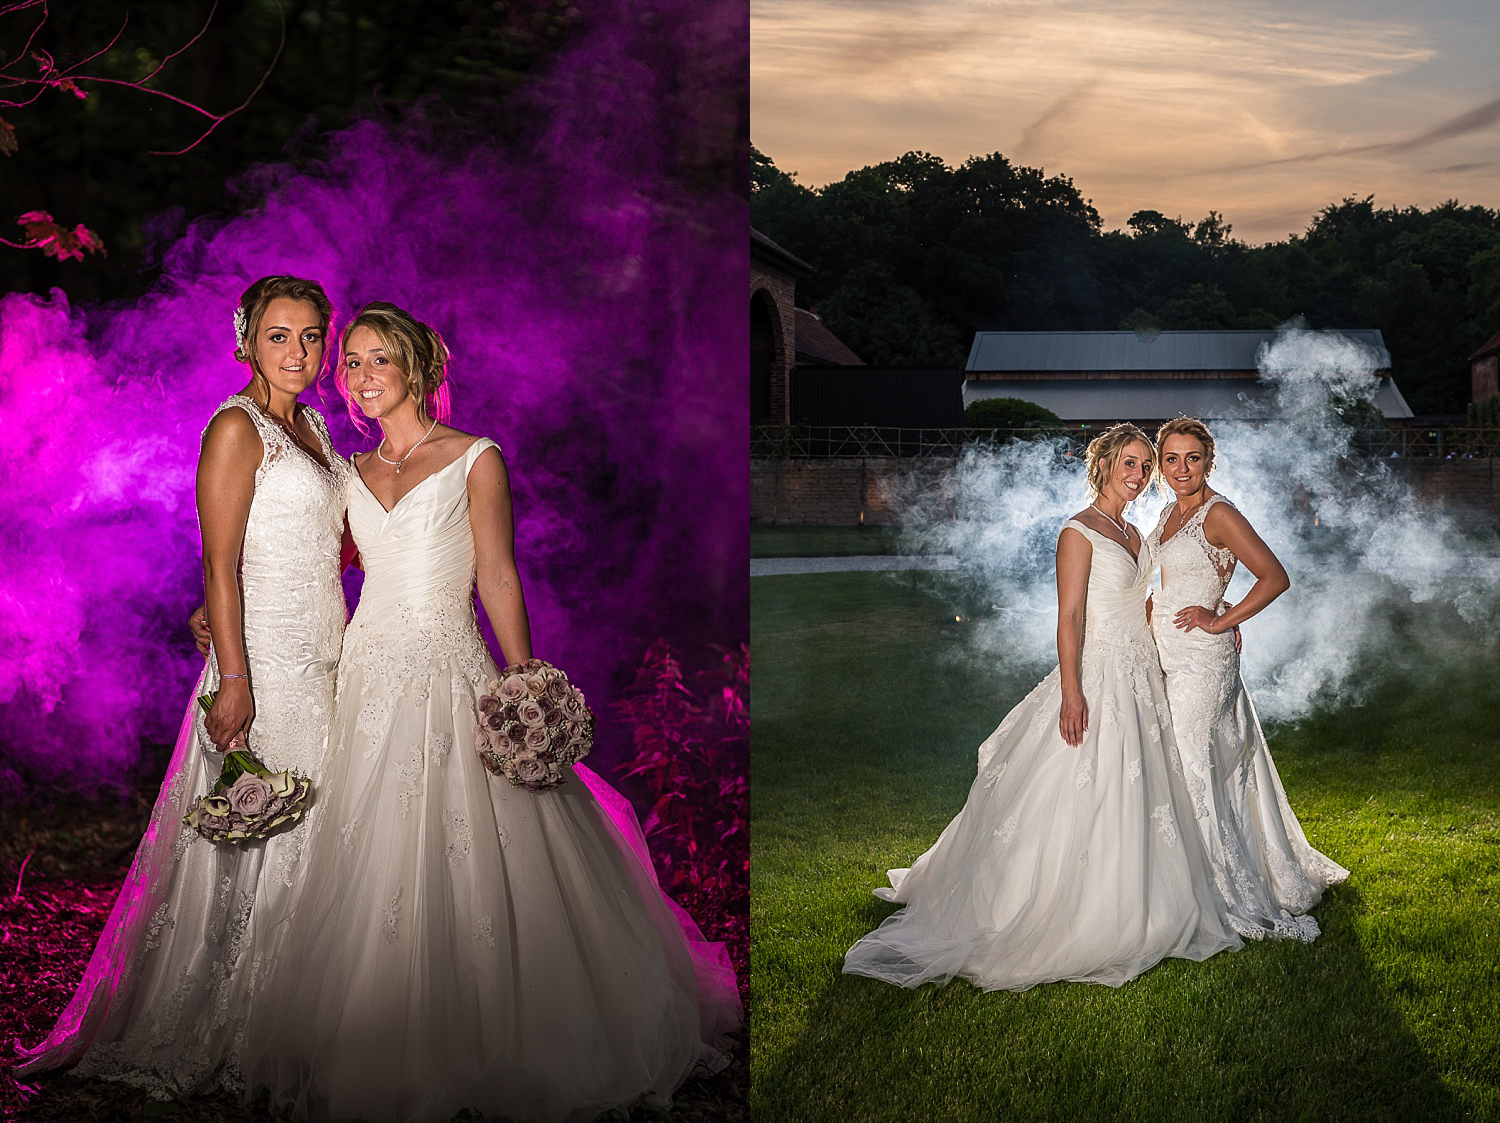 Brides pose for dramatic wedding portrait